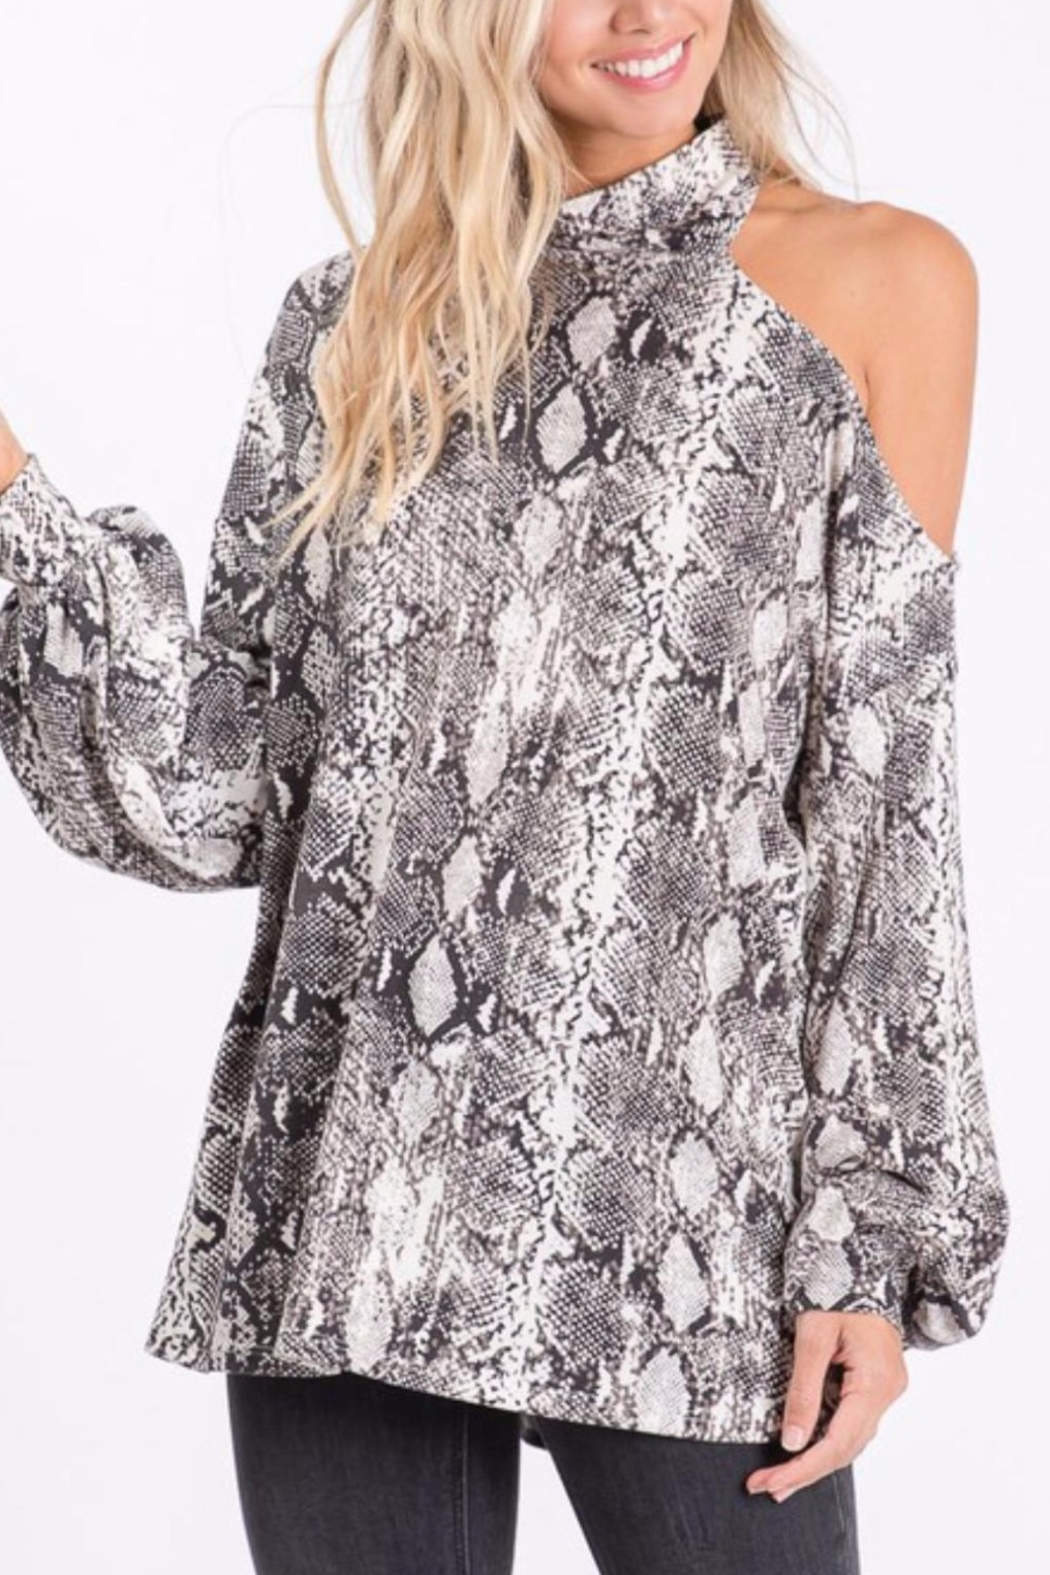 Bibi Snakeskin Knit Top with One Shoulder Strap - Front Cropped Image